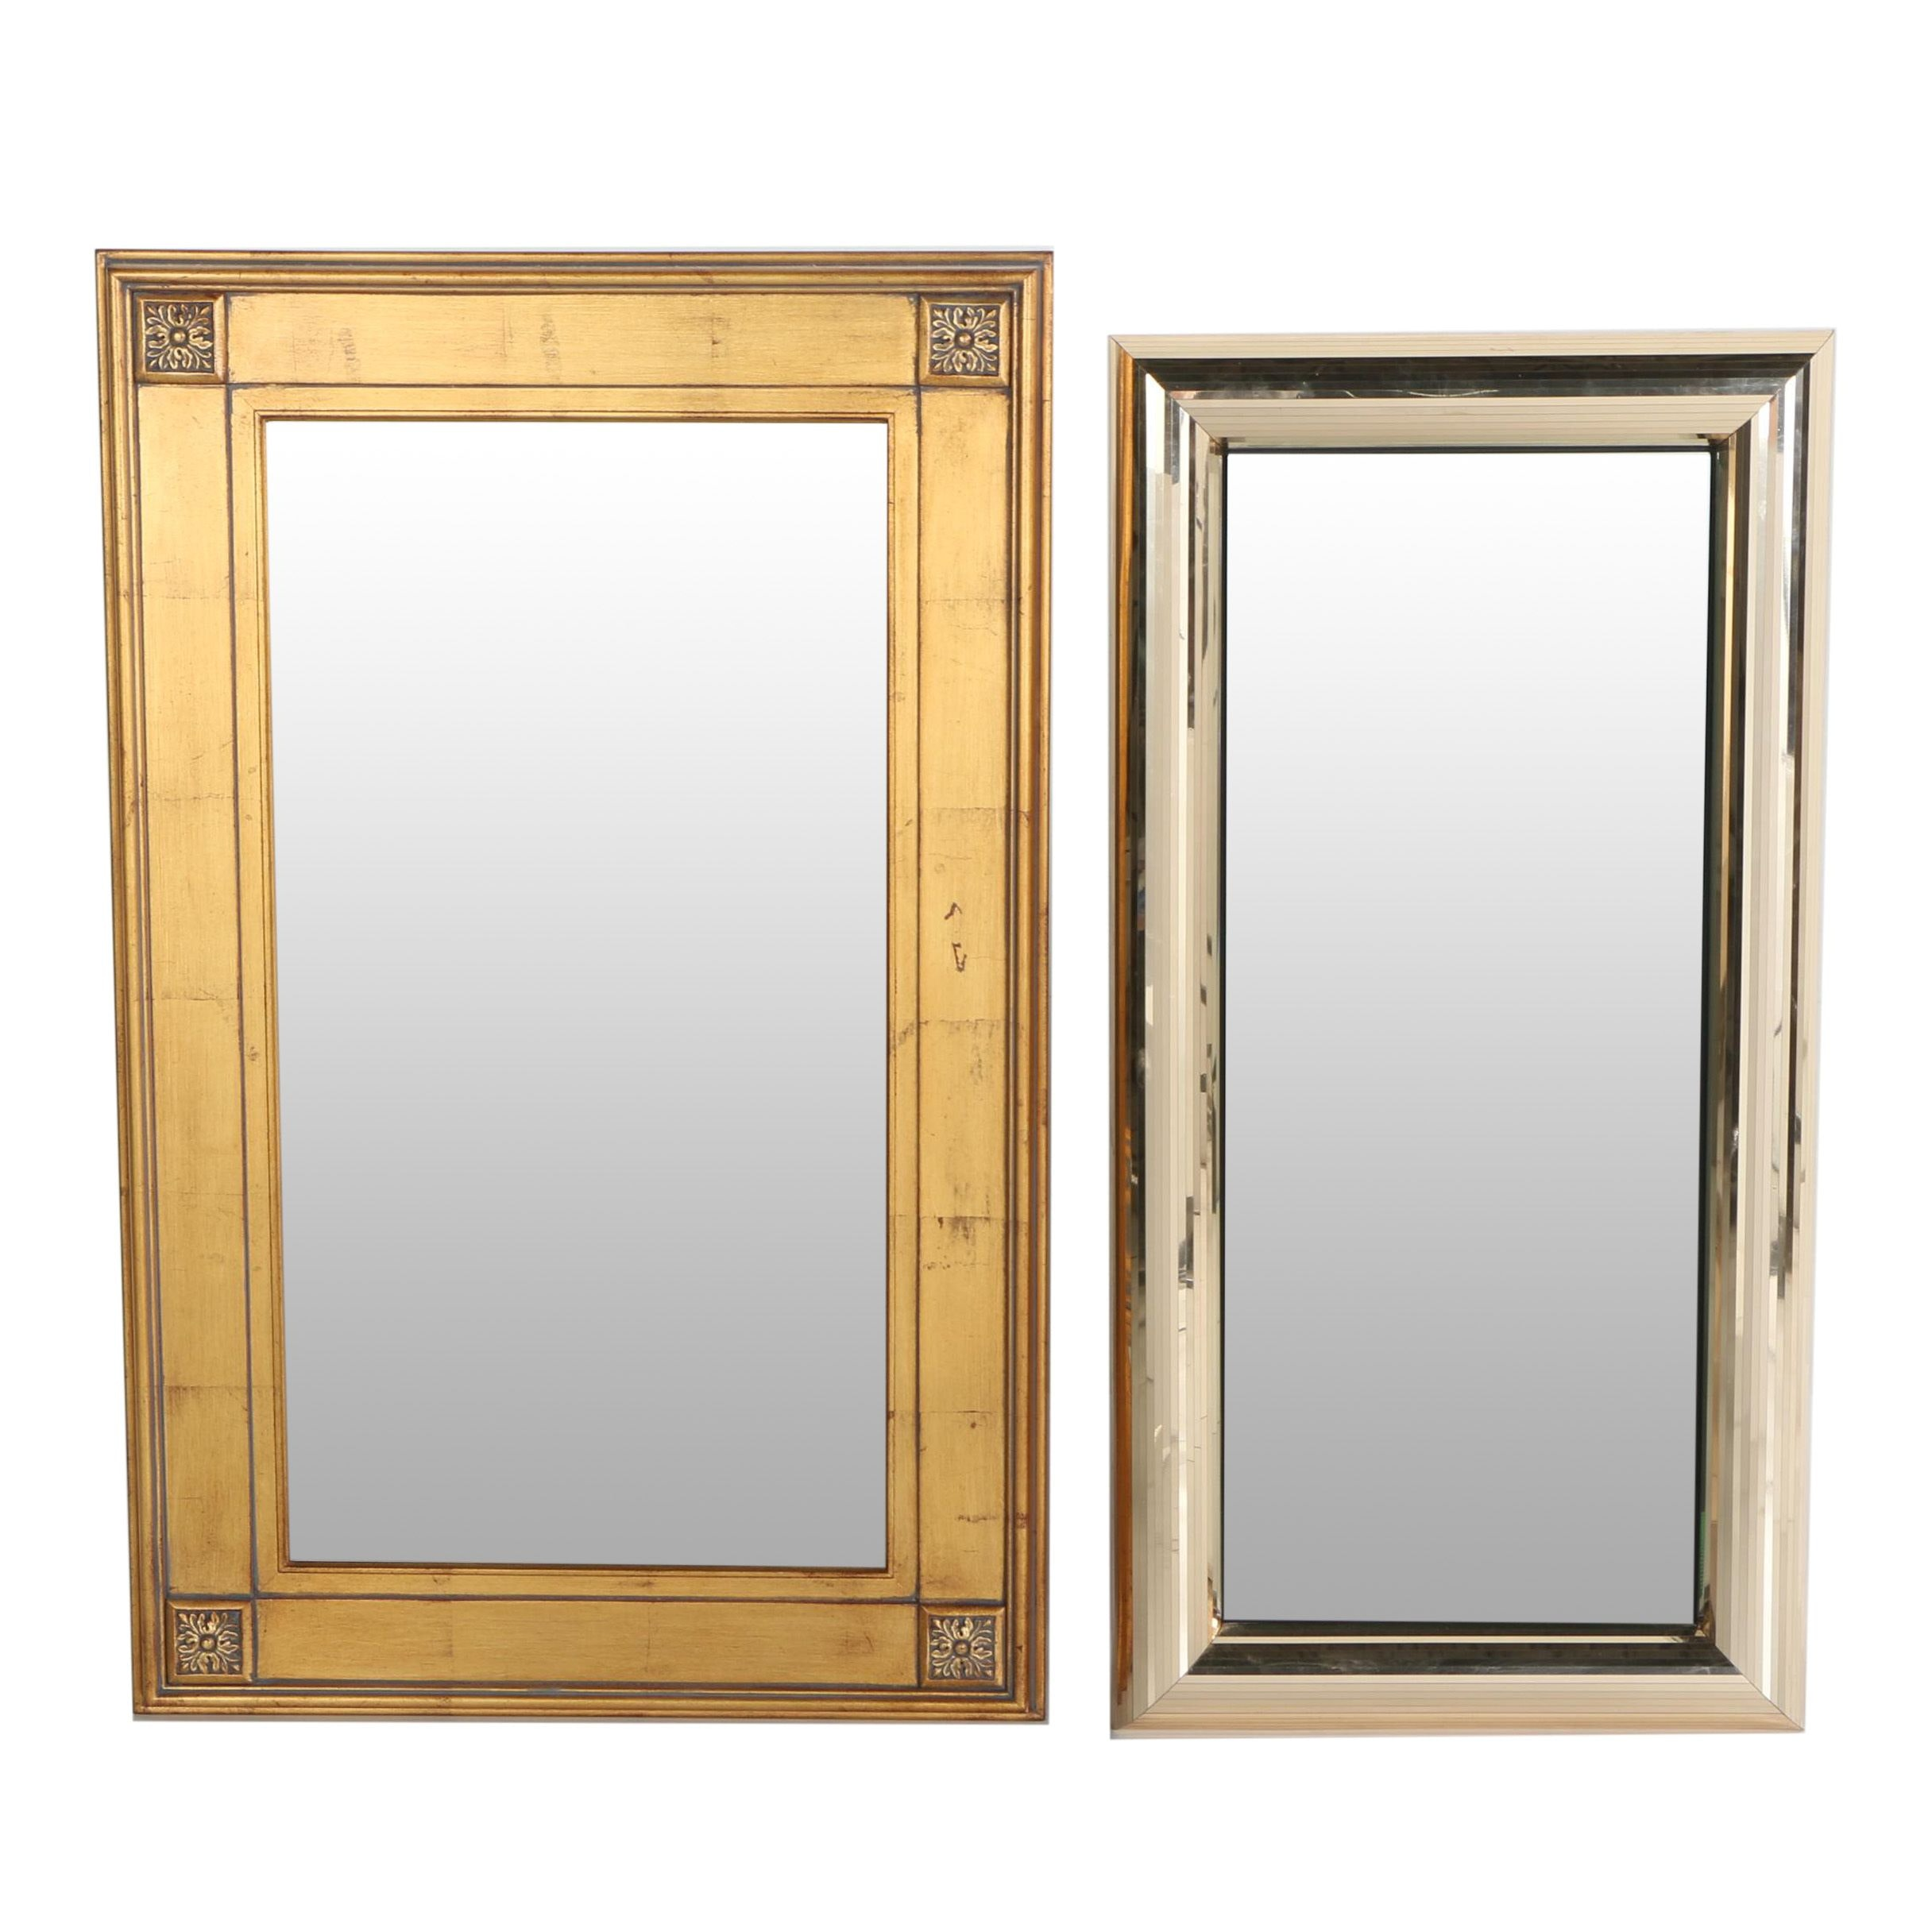 Wood and Metal Framed Wall Mirrors